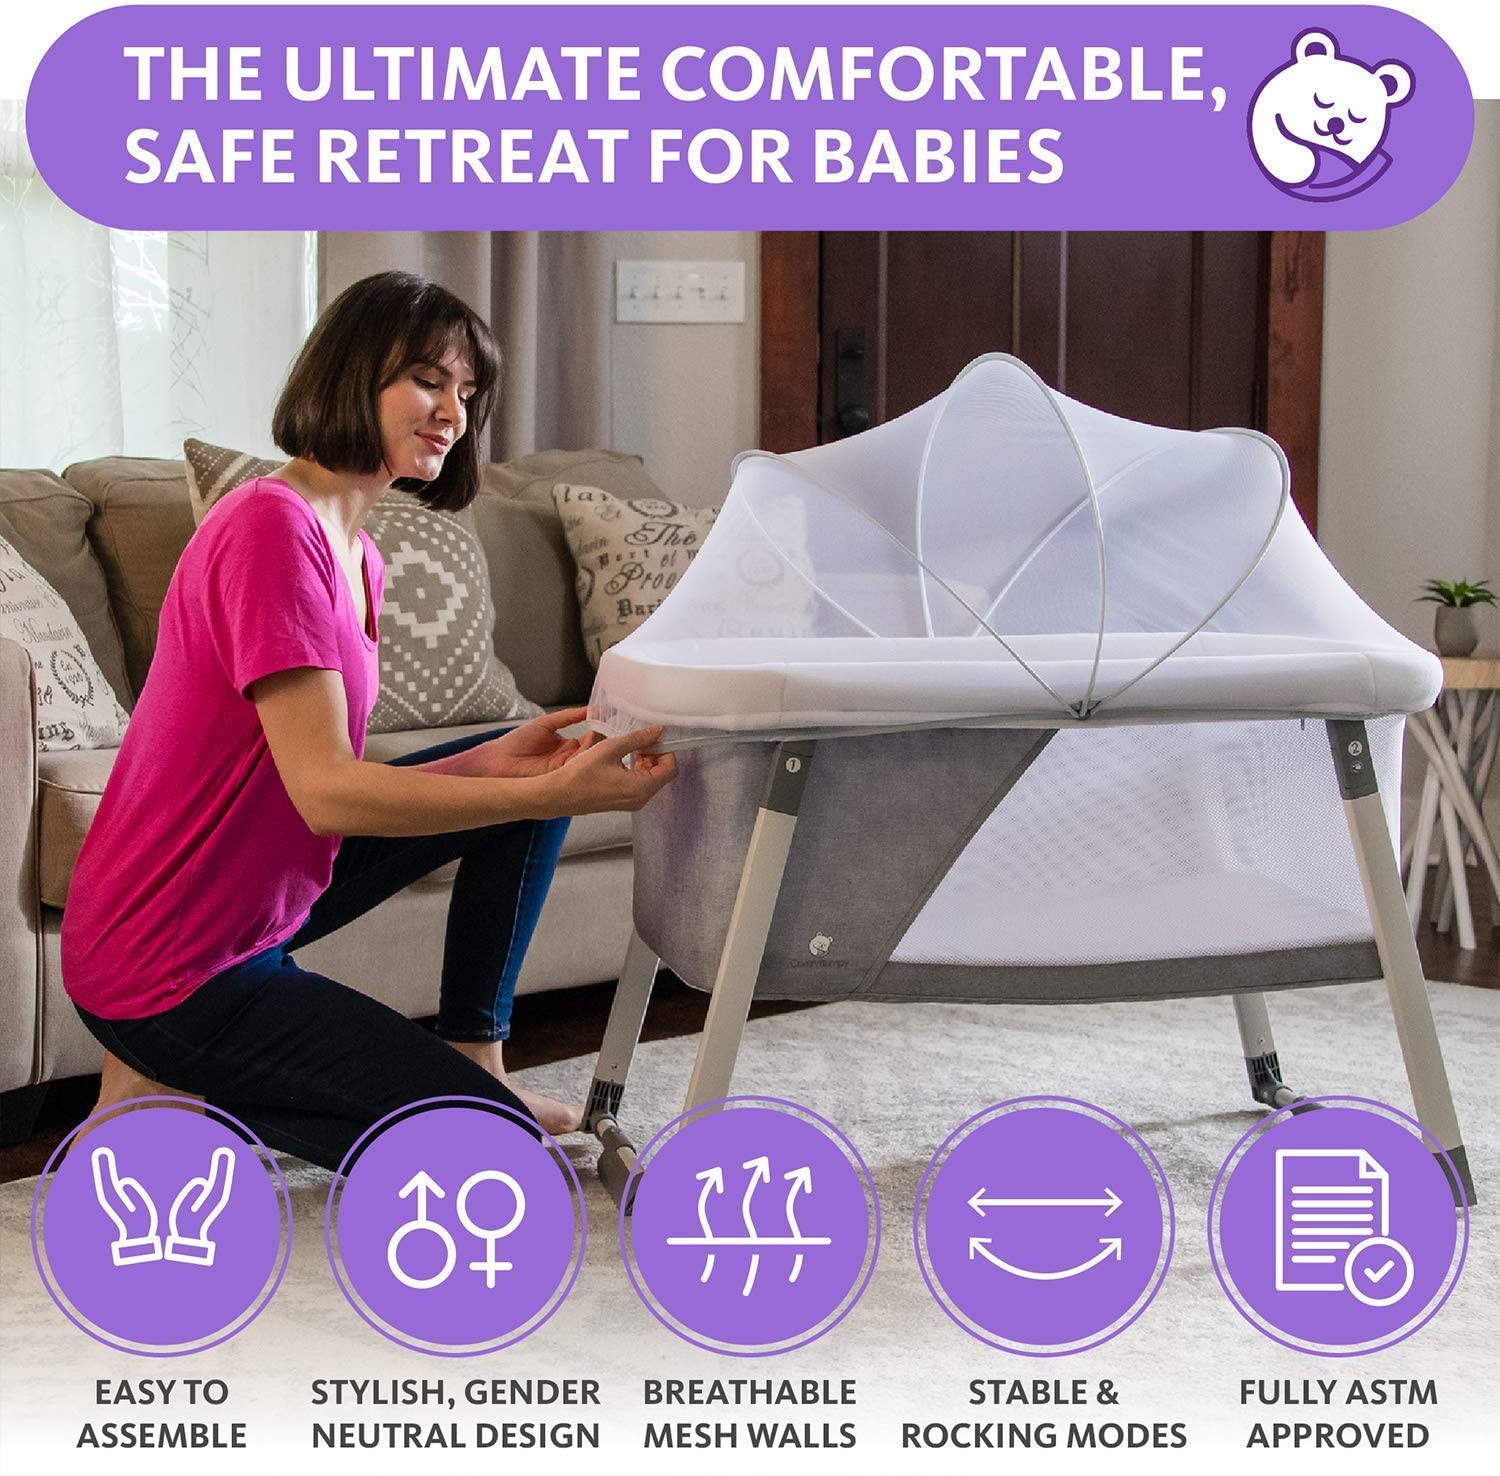 Travel Bassinet for Baby - Rocking & Sturdy Cradle - Includes Carry Case, Mosquito Net, Mattress, Sheets, Infant Crib, and Urine Pad - Portable Bed Side Sleeper for Newborn Babies by ComfyBumpy